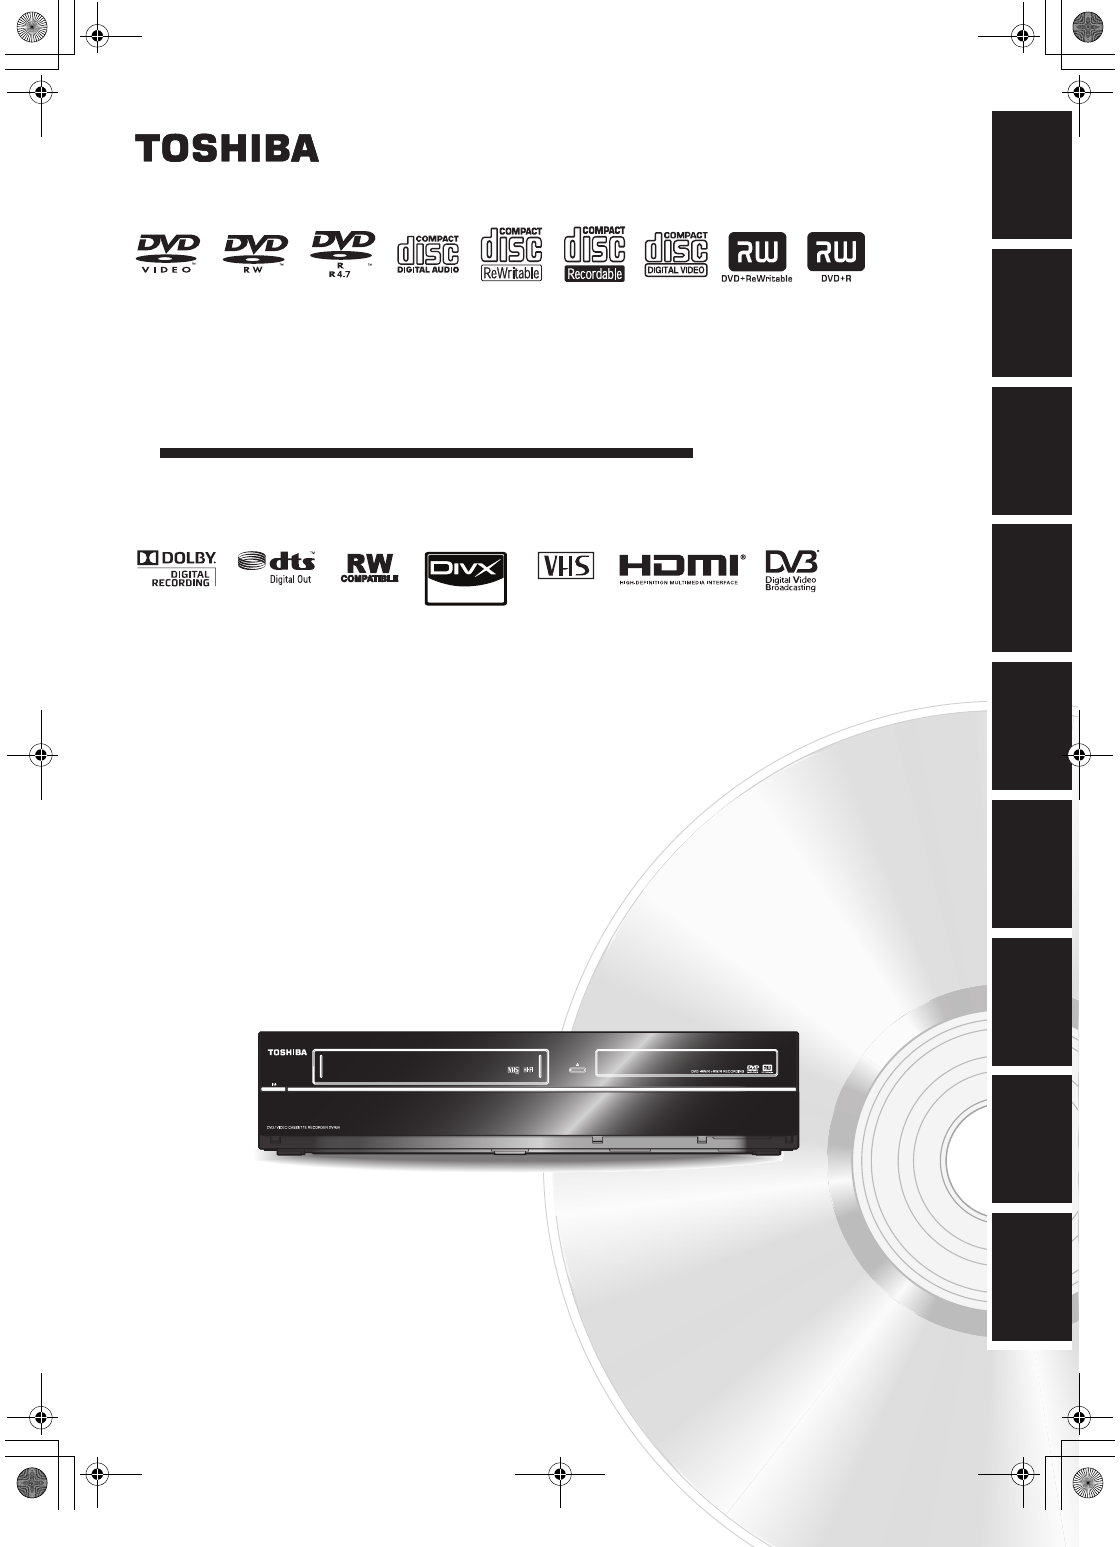 Toshiba Dvr20Kb Owners Manual ManualsLib Makes It Easy To Find